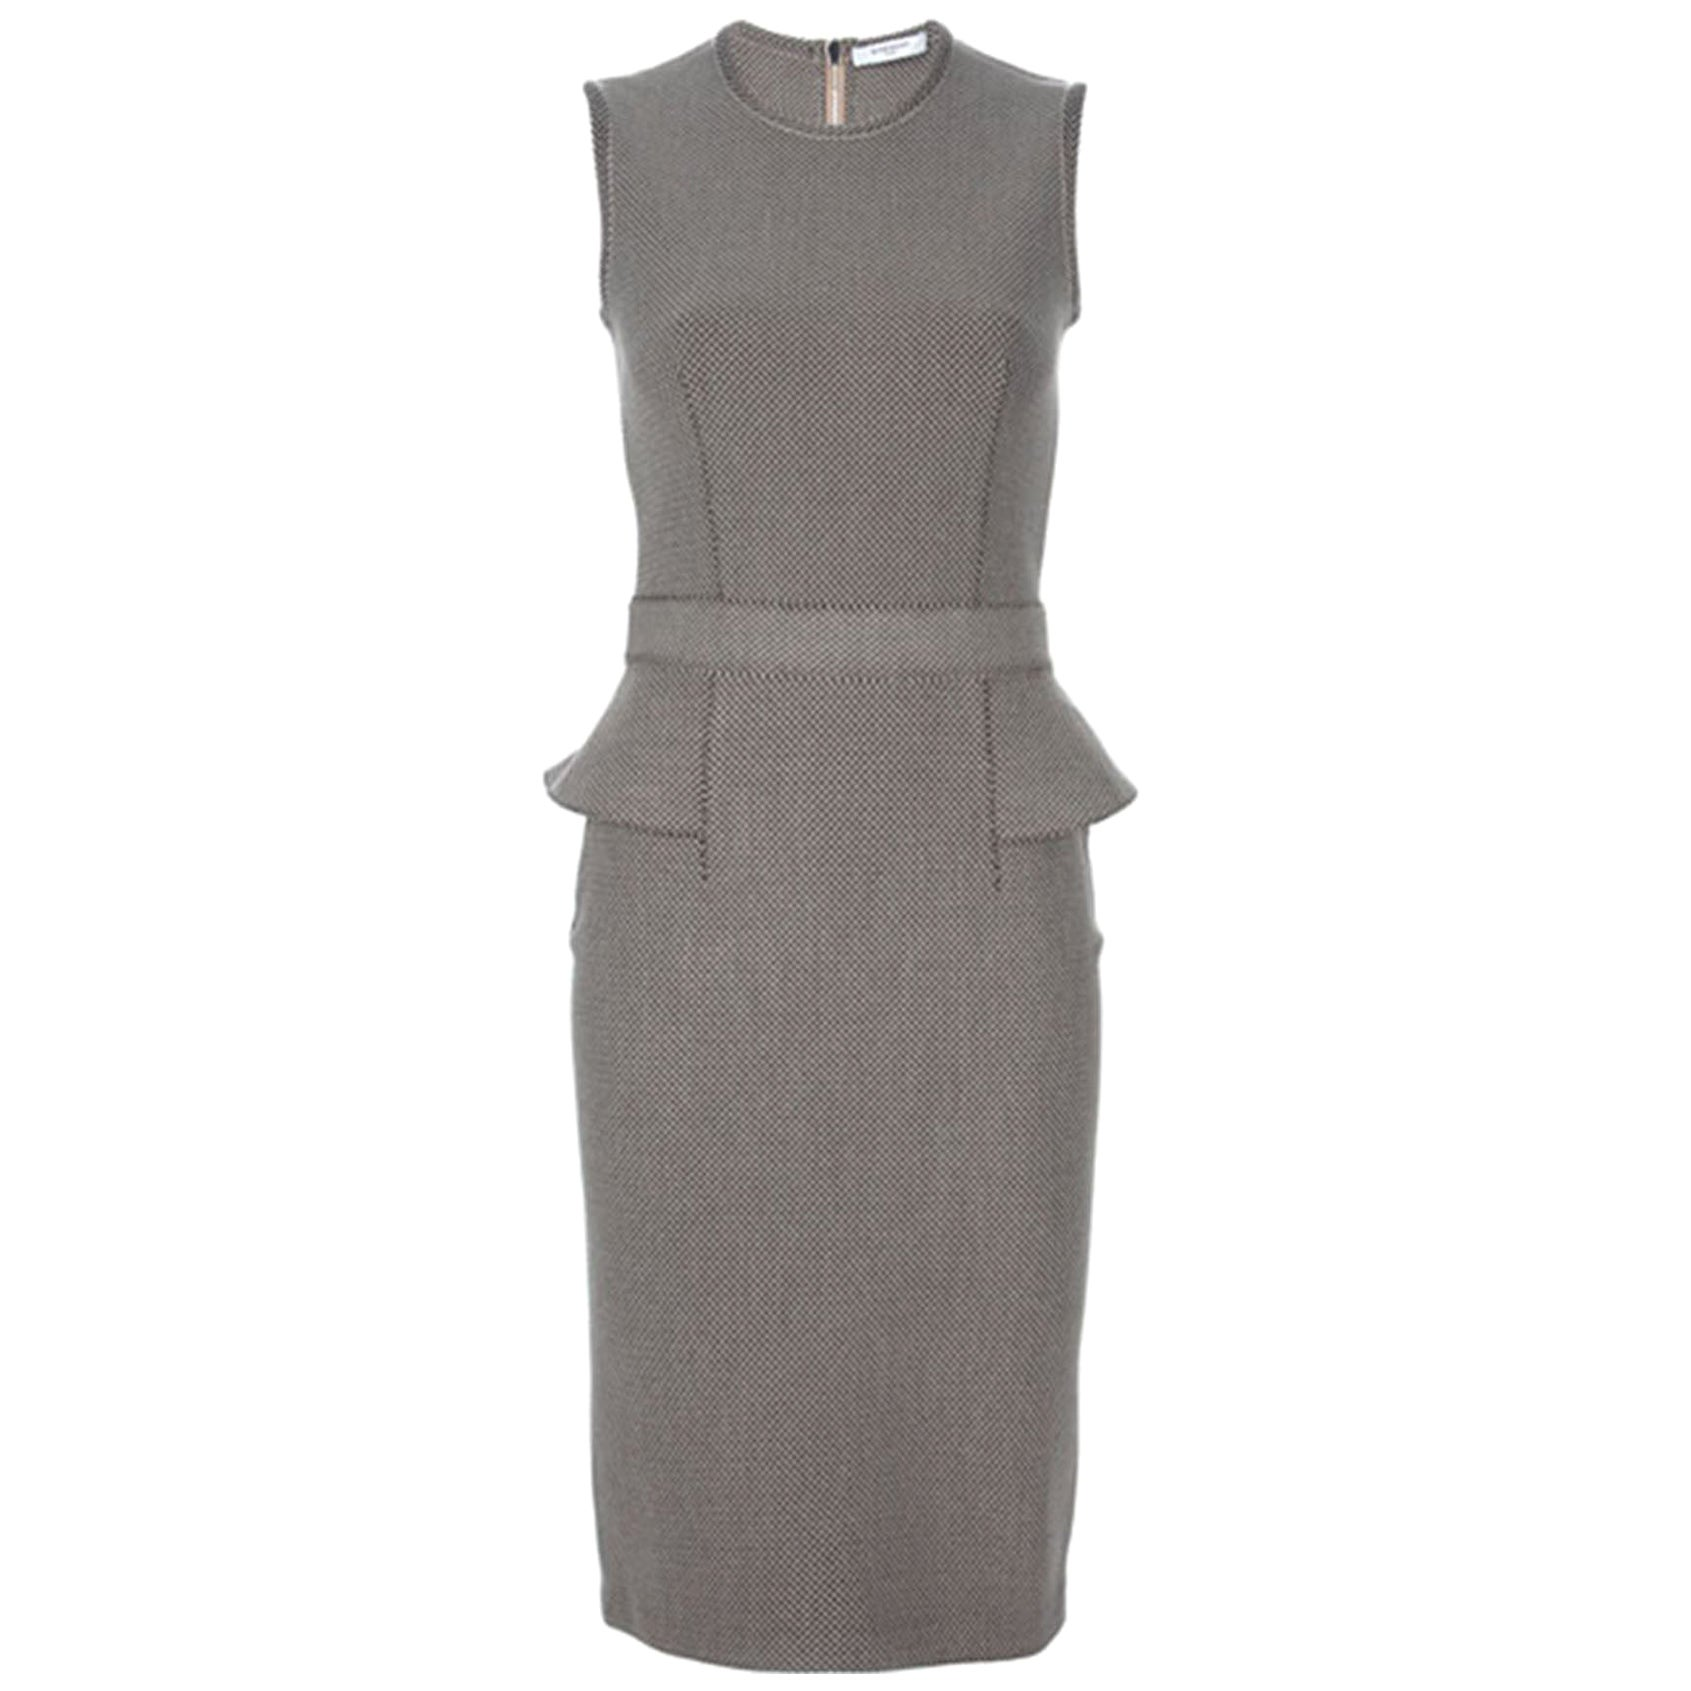 Givenchy Textured Wool-Blend Peplum Dress